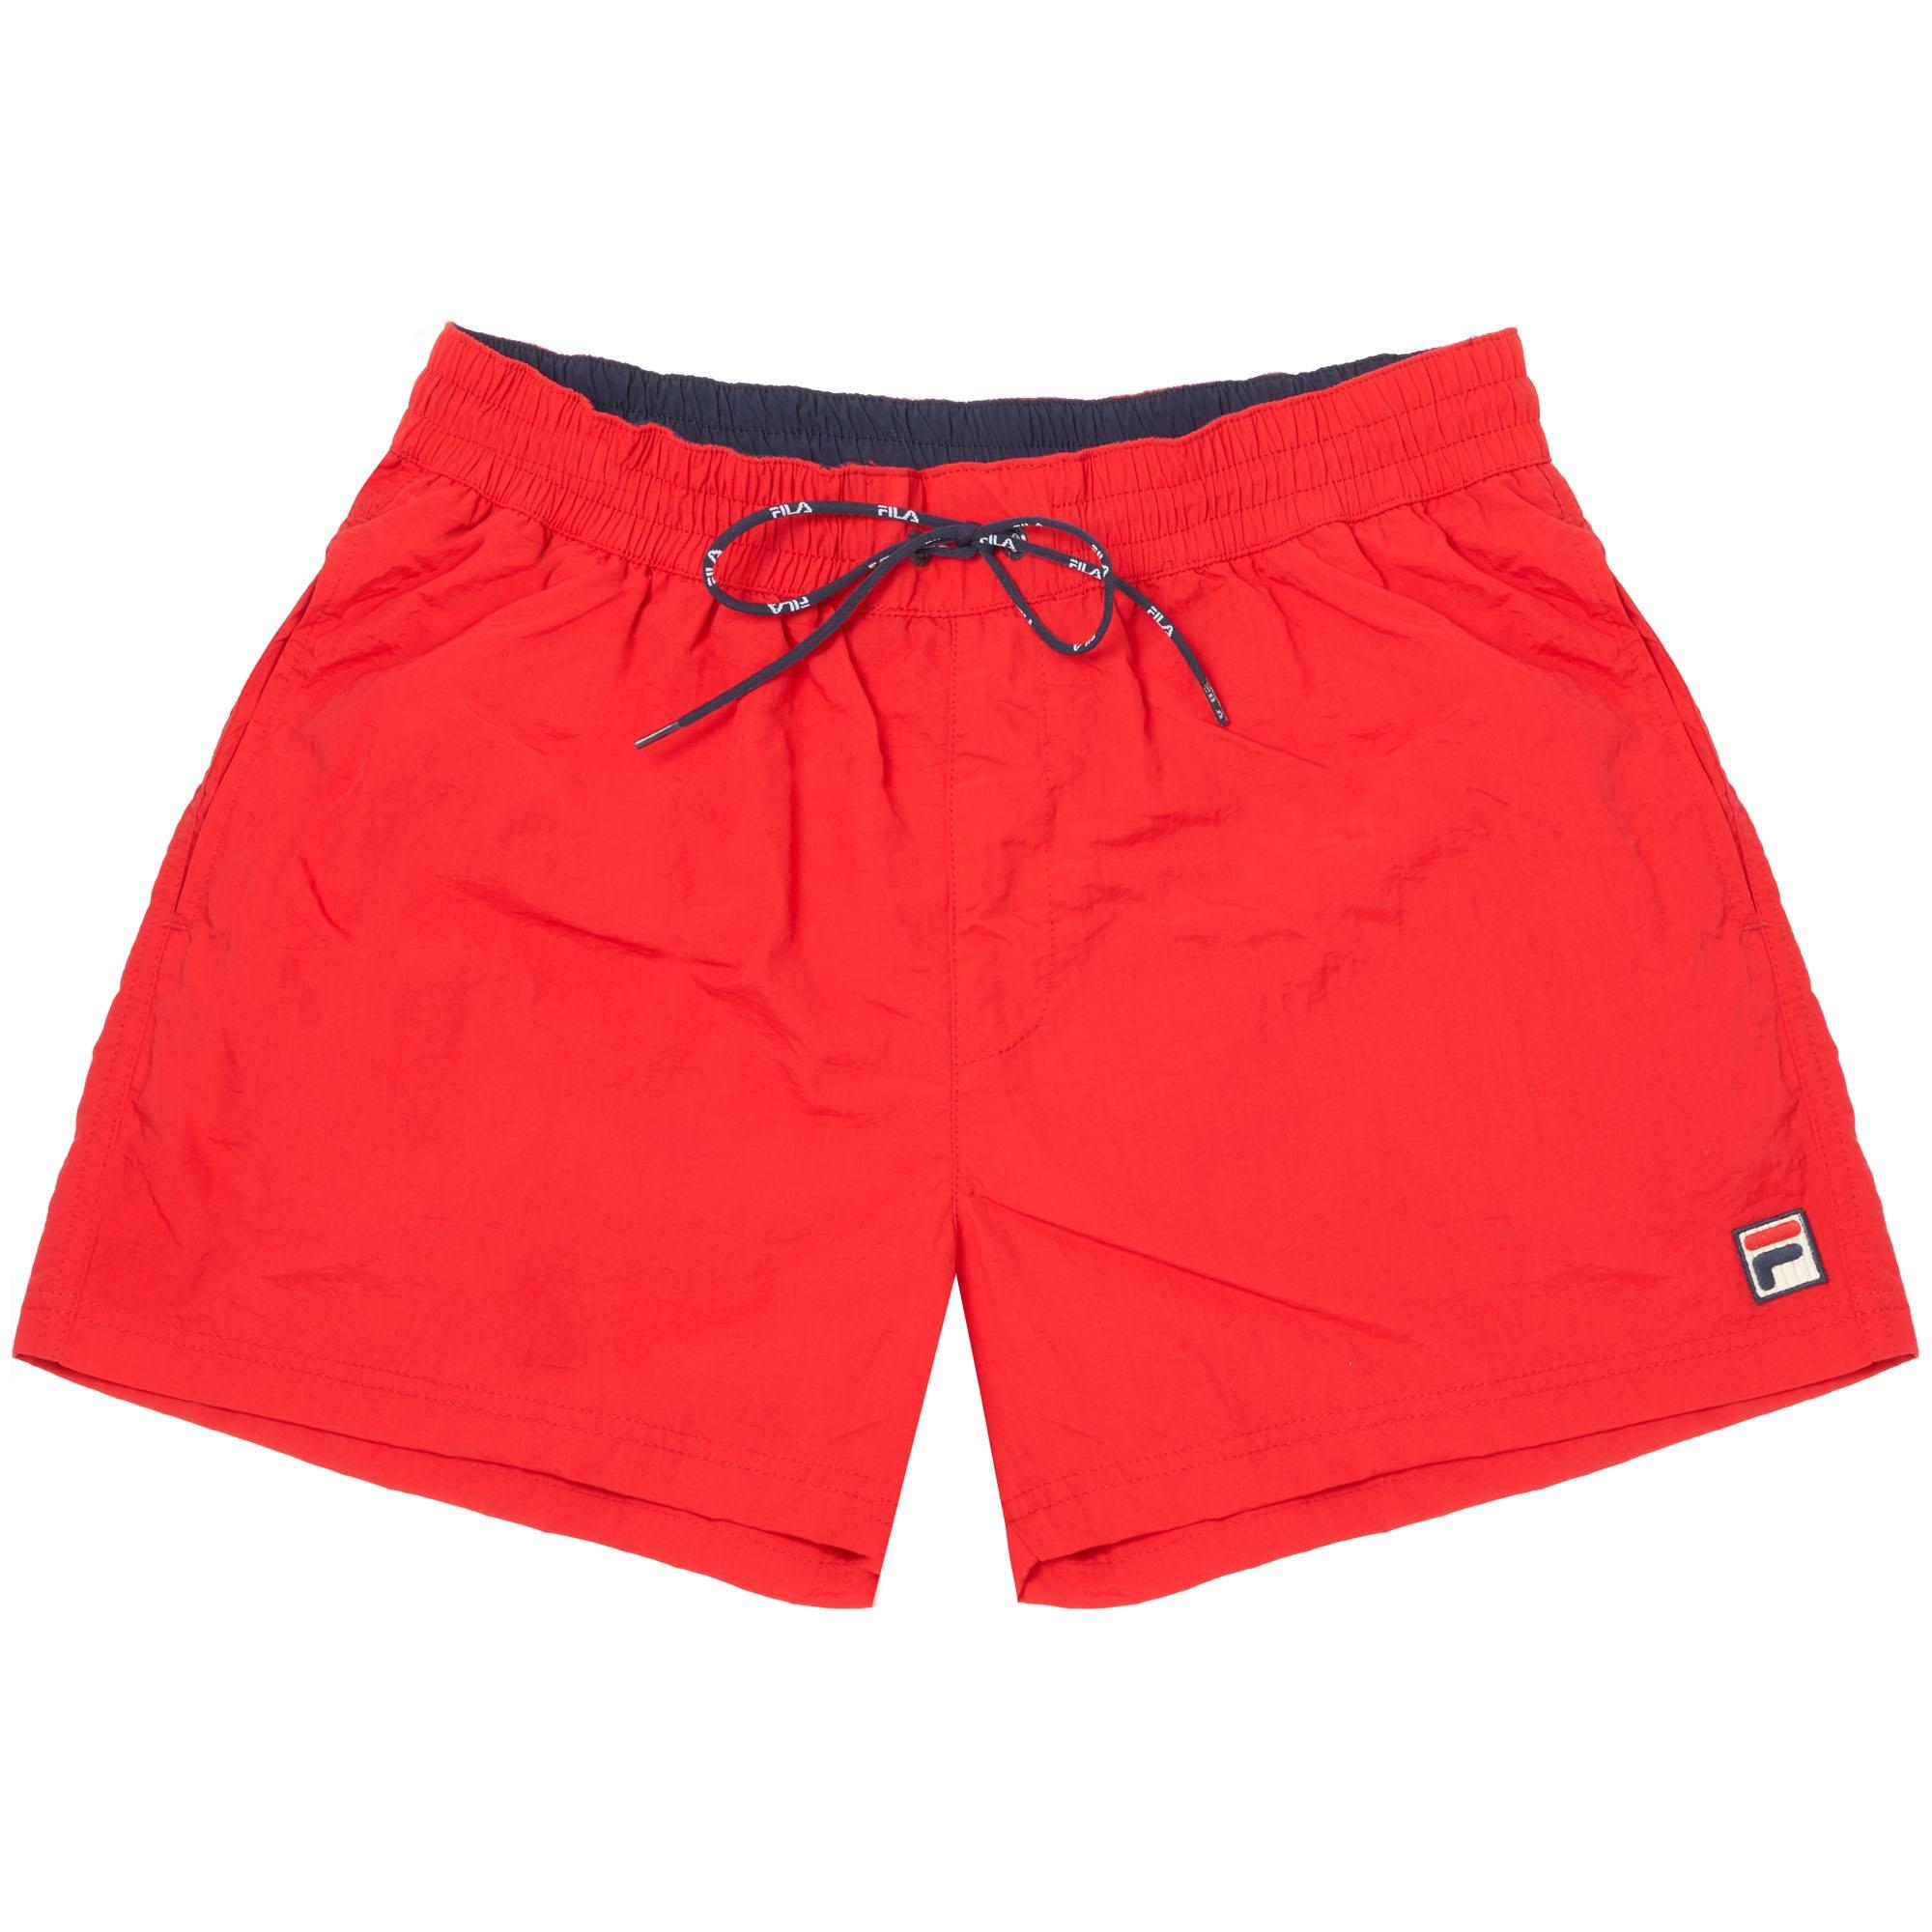 1a655117a7 Lyst - Fila Vintage Chinese Red Artoni Swim Shorts in Red for Men